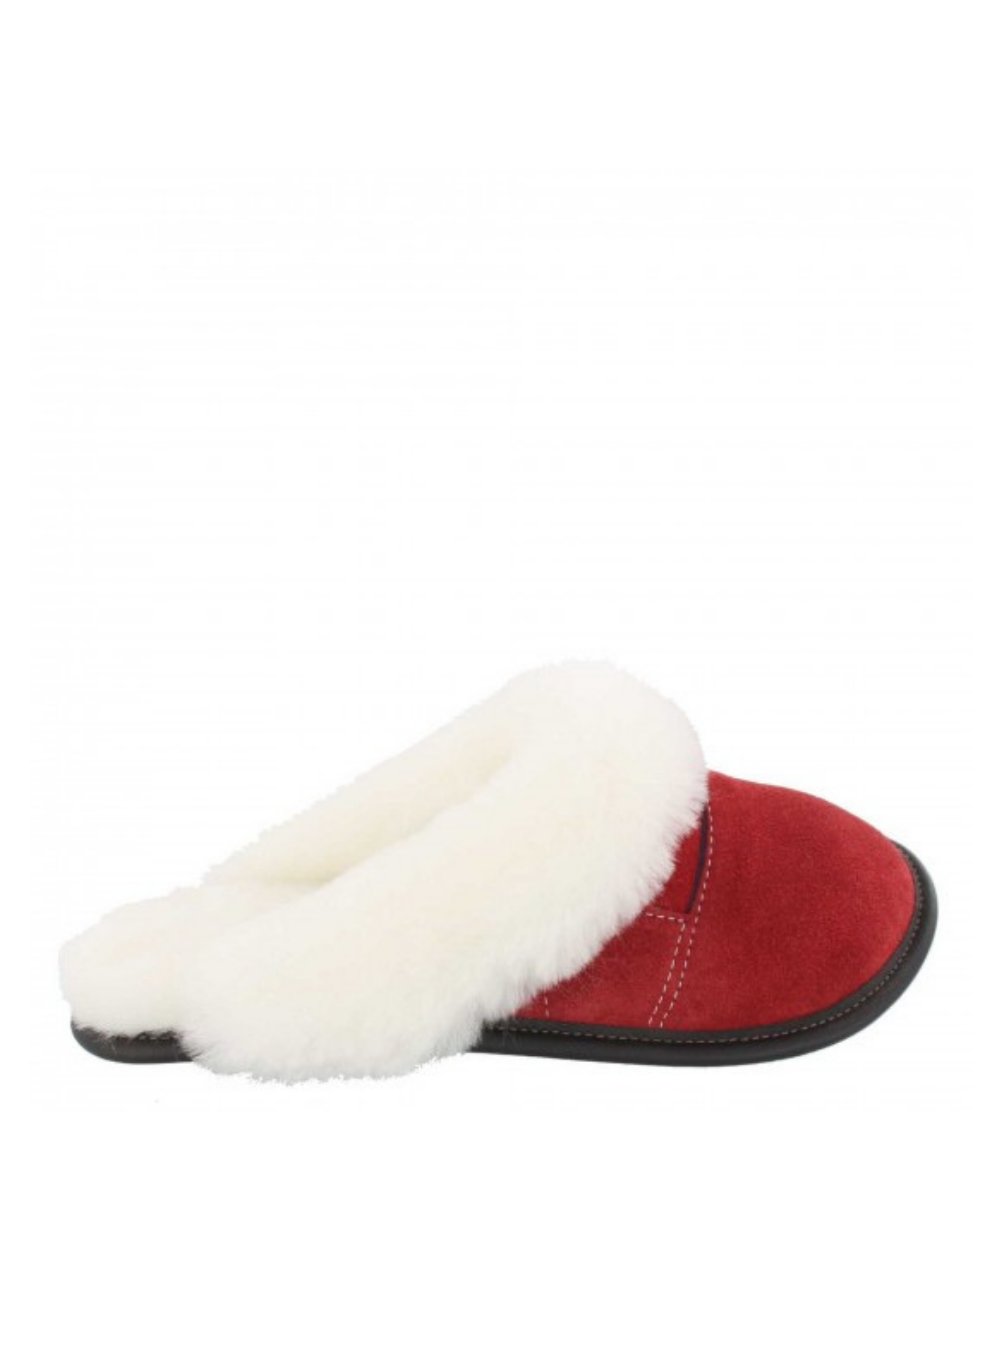 GARNEAU TWO-TONE MULE HEAD SLIPPERS 0450